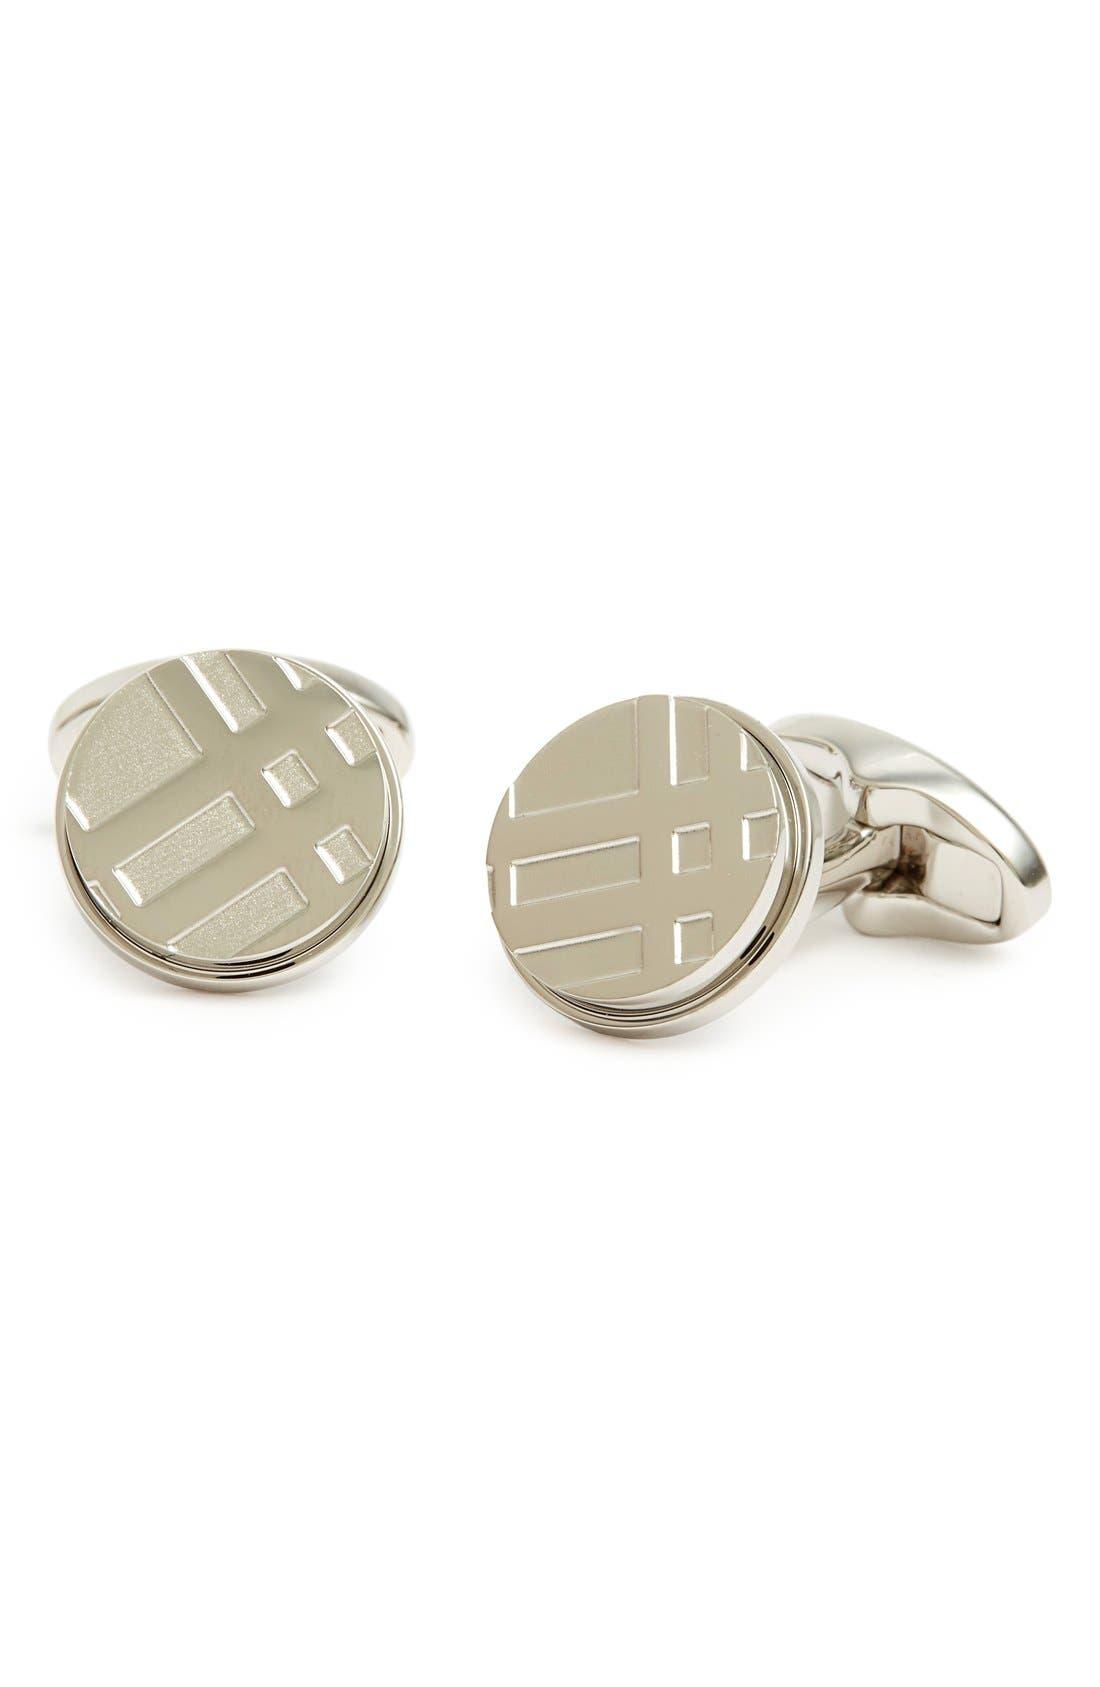 Round Cuff Links,                             Main thumbnail 1, color,                             SILVER